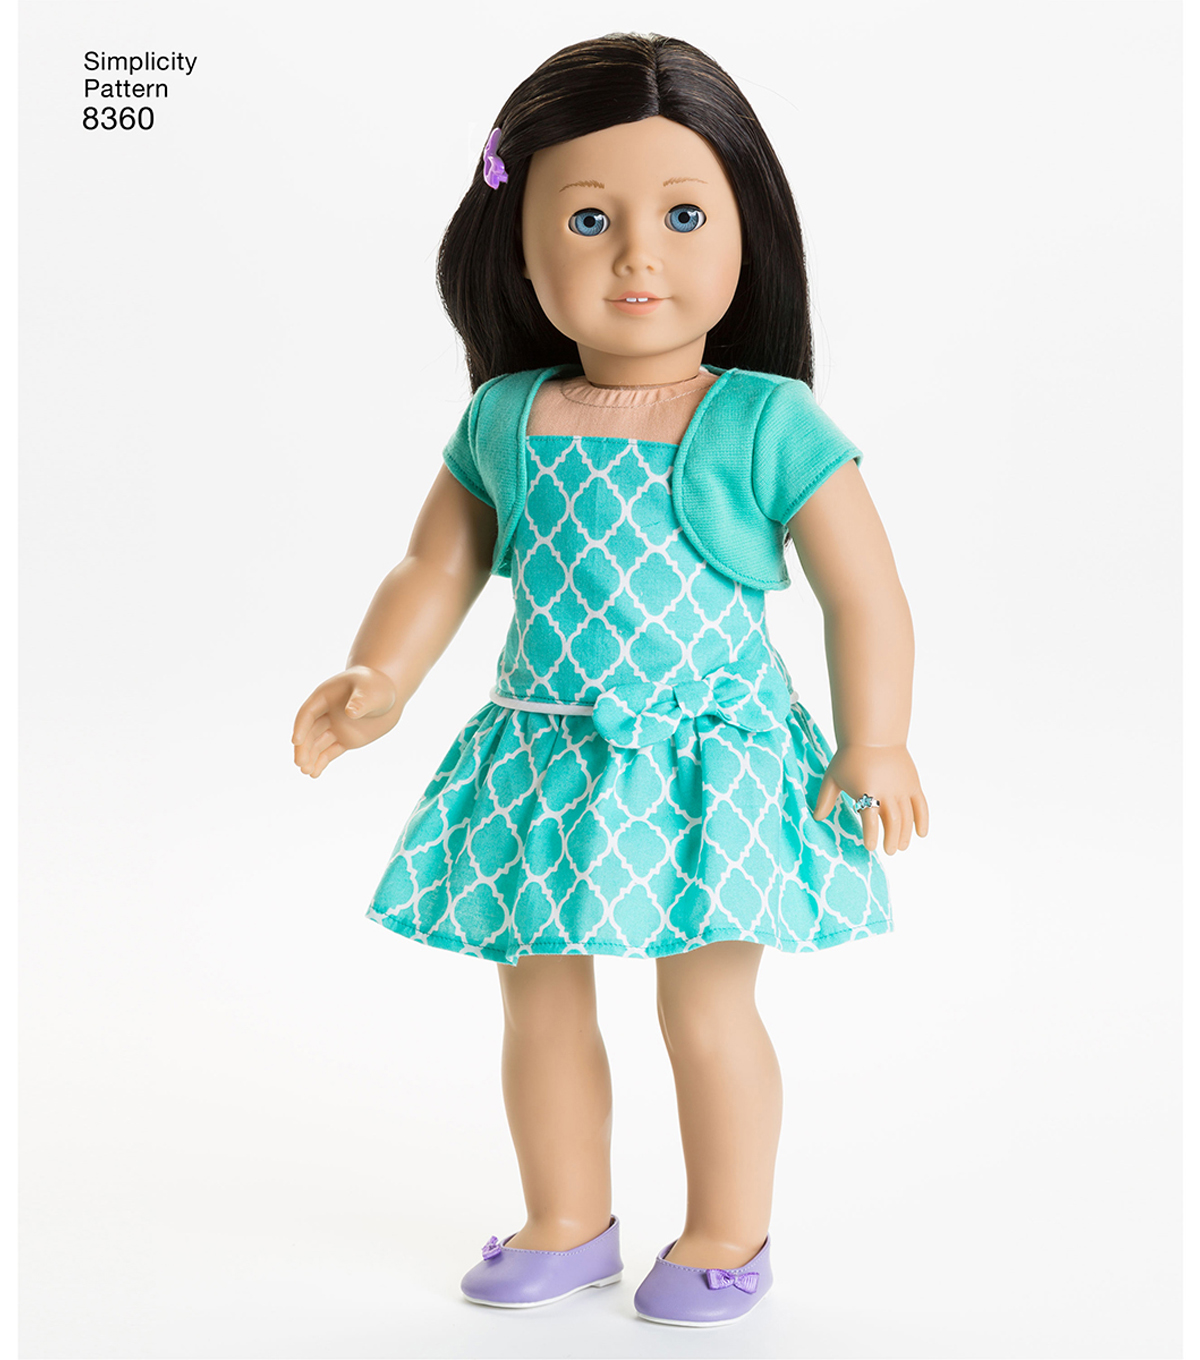 Simplicity Pattern 8360 18 Doll American Girl Clothes Joann